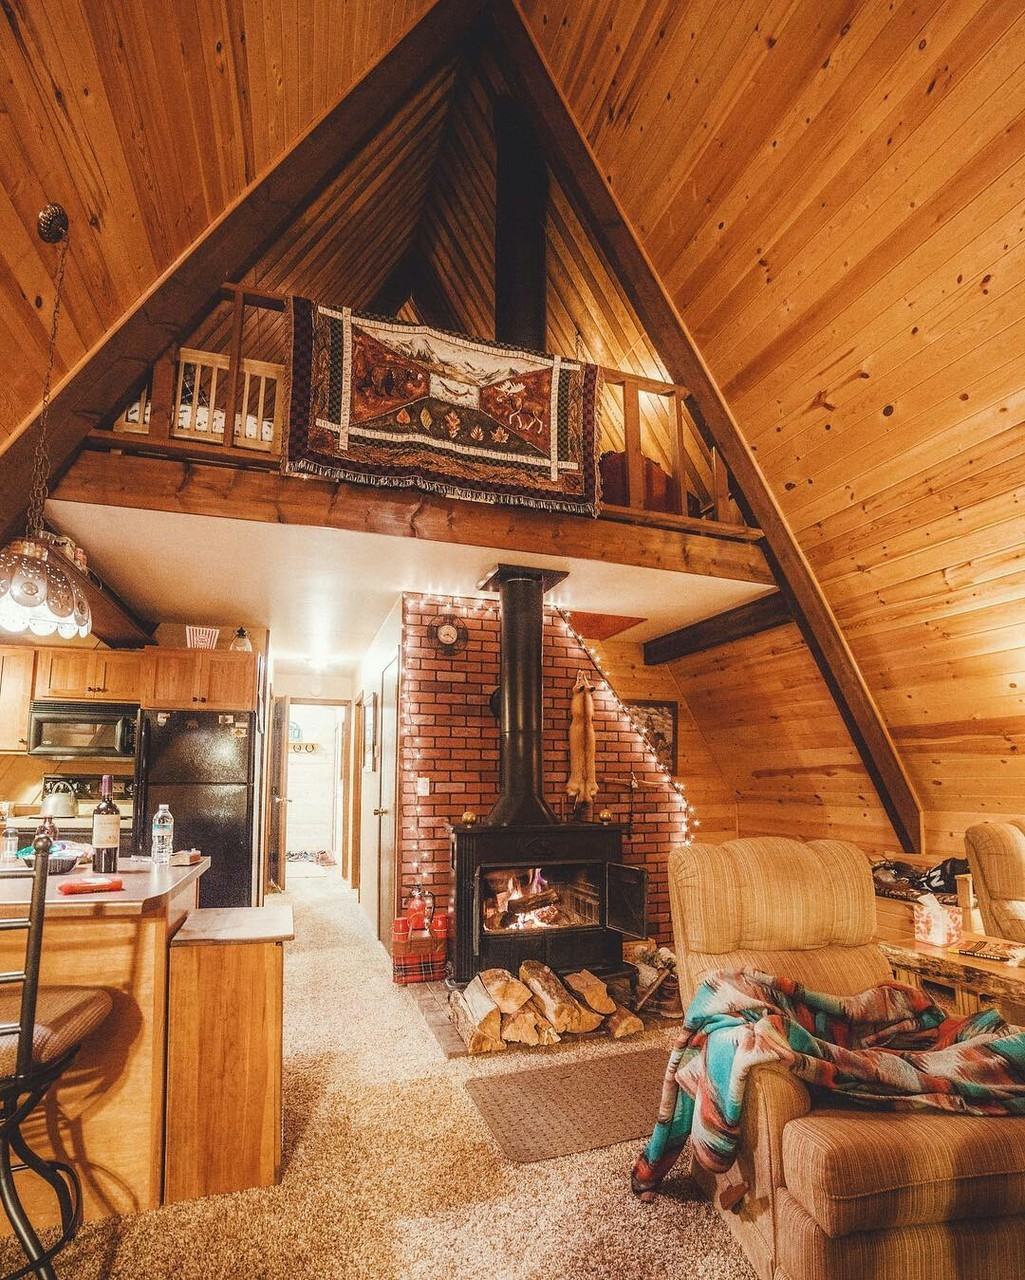 cabin, fire, furniture, home decorations, house